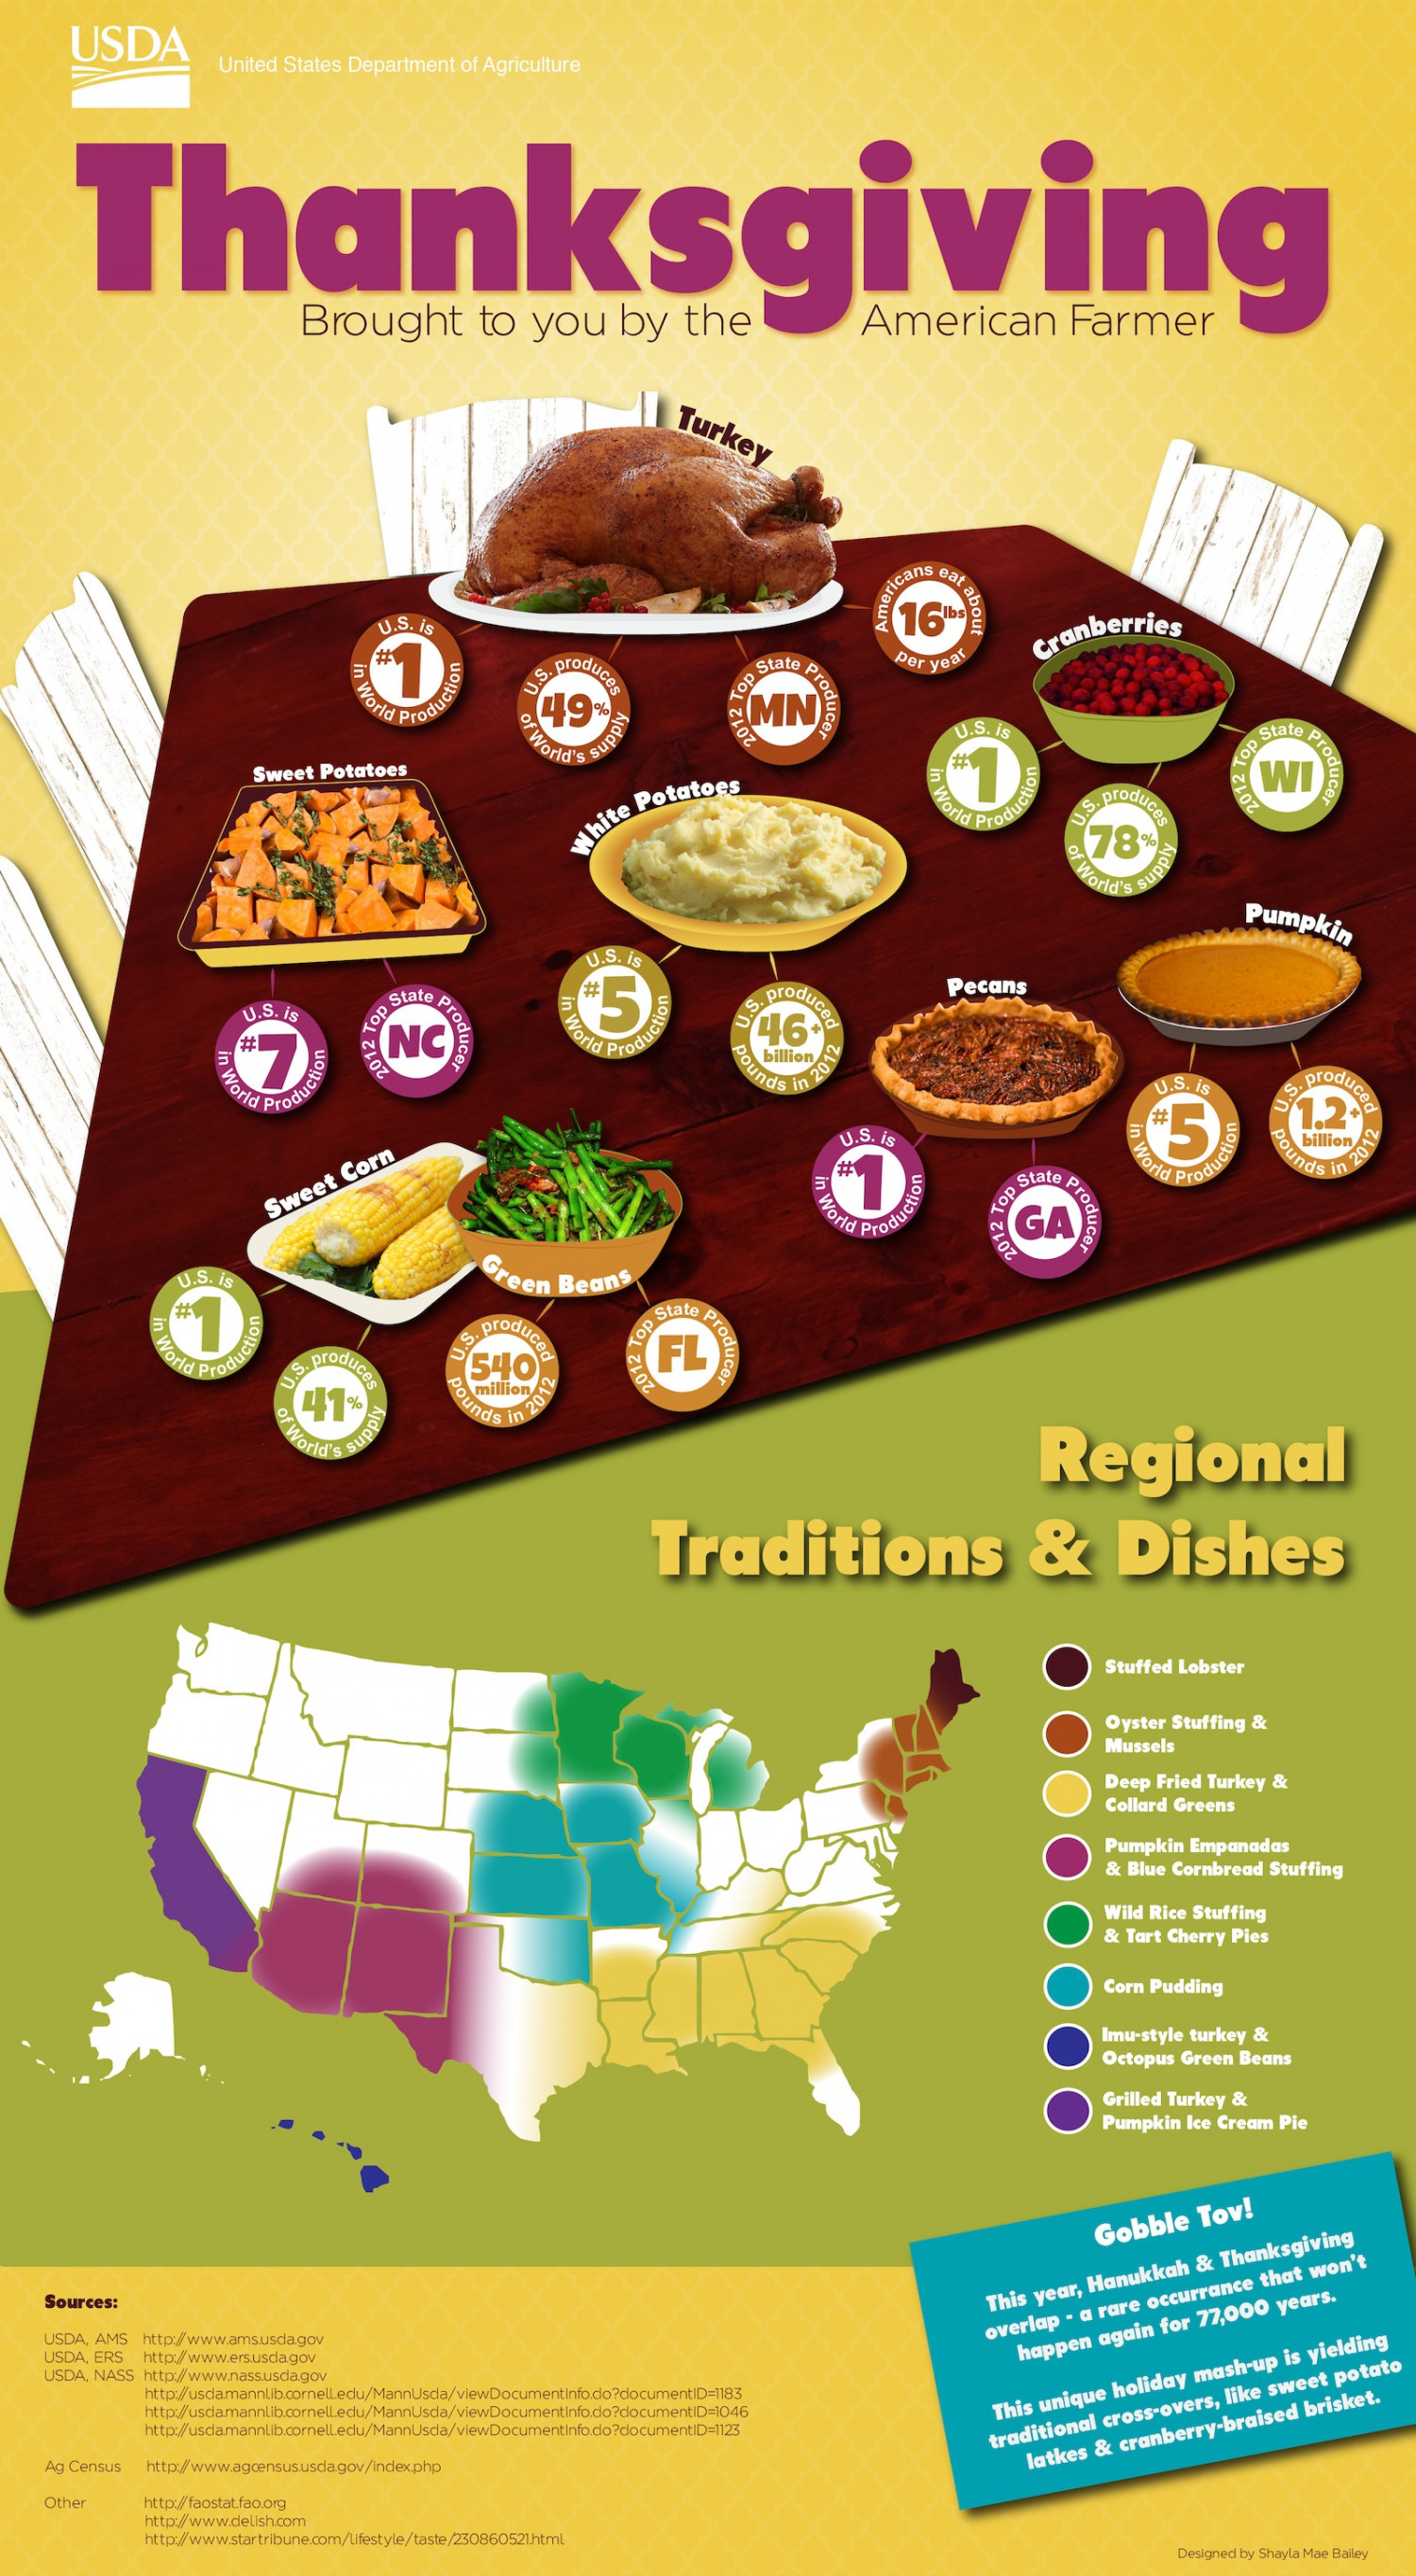 Thanksgiving - Brought to You by the American Farmer Infographic